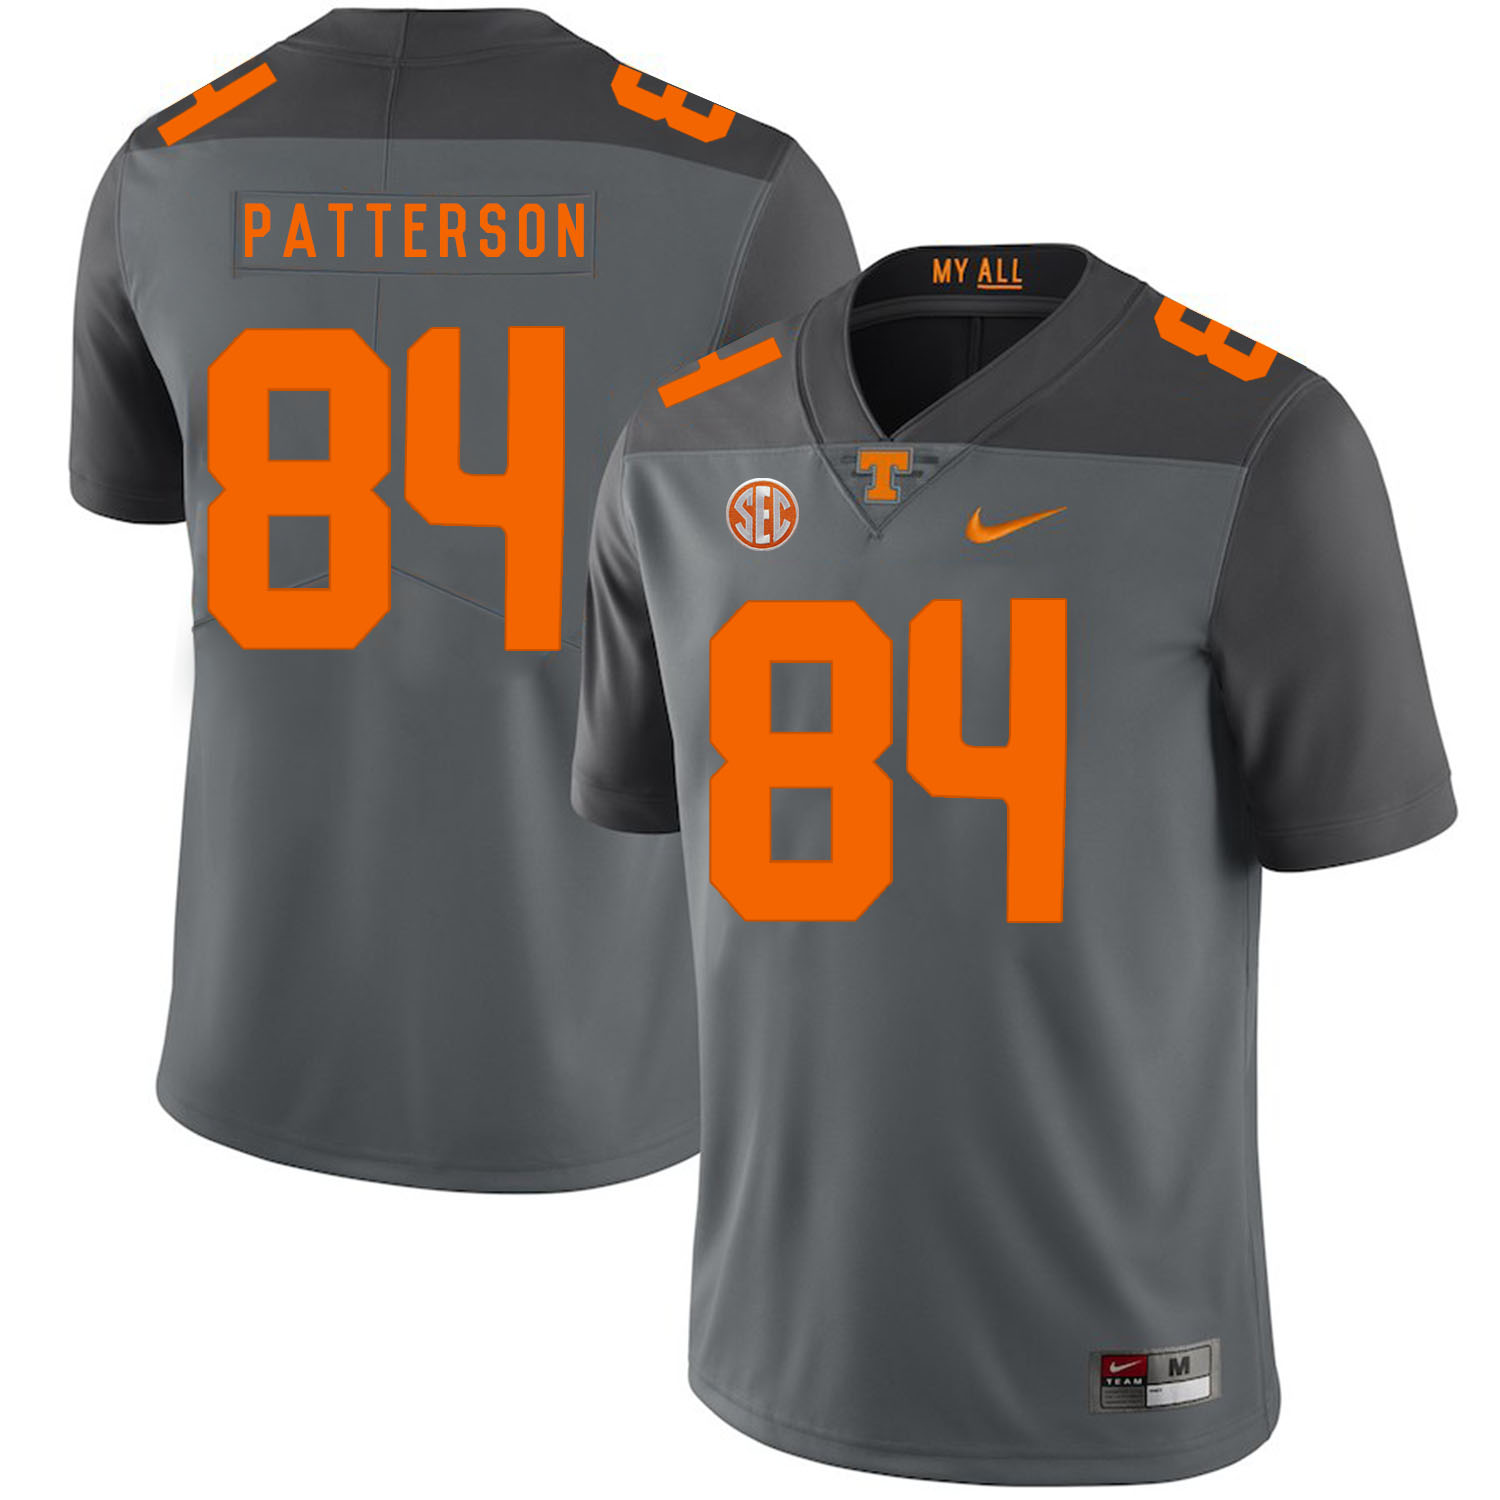 Tennessee Volunteers 84 Cordarrelle Patterson Gray Nike College Football Jersey